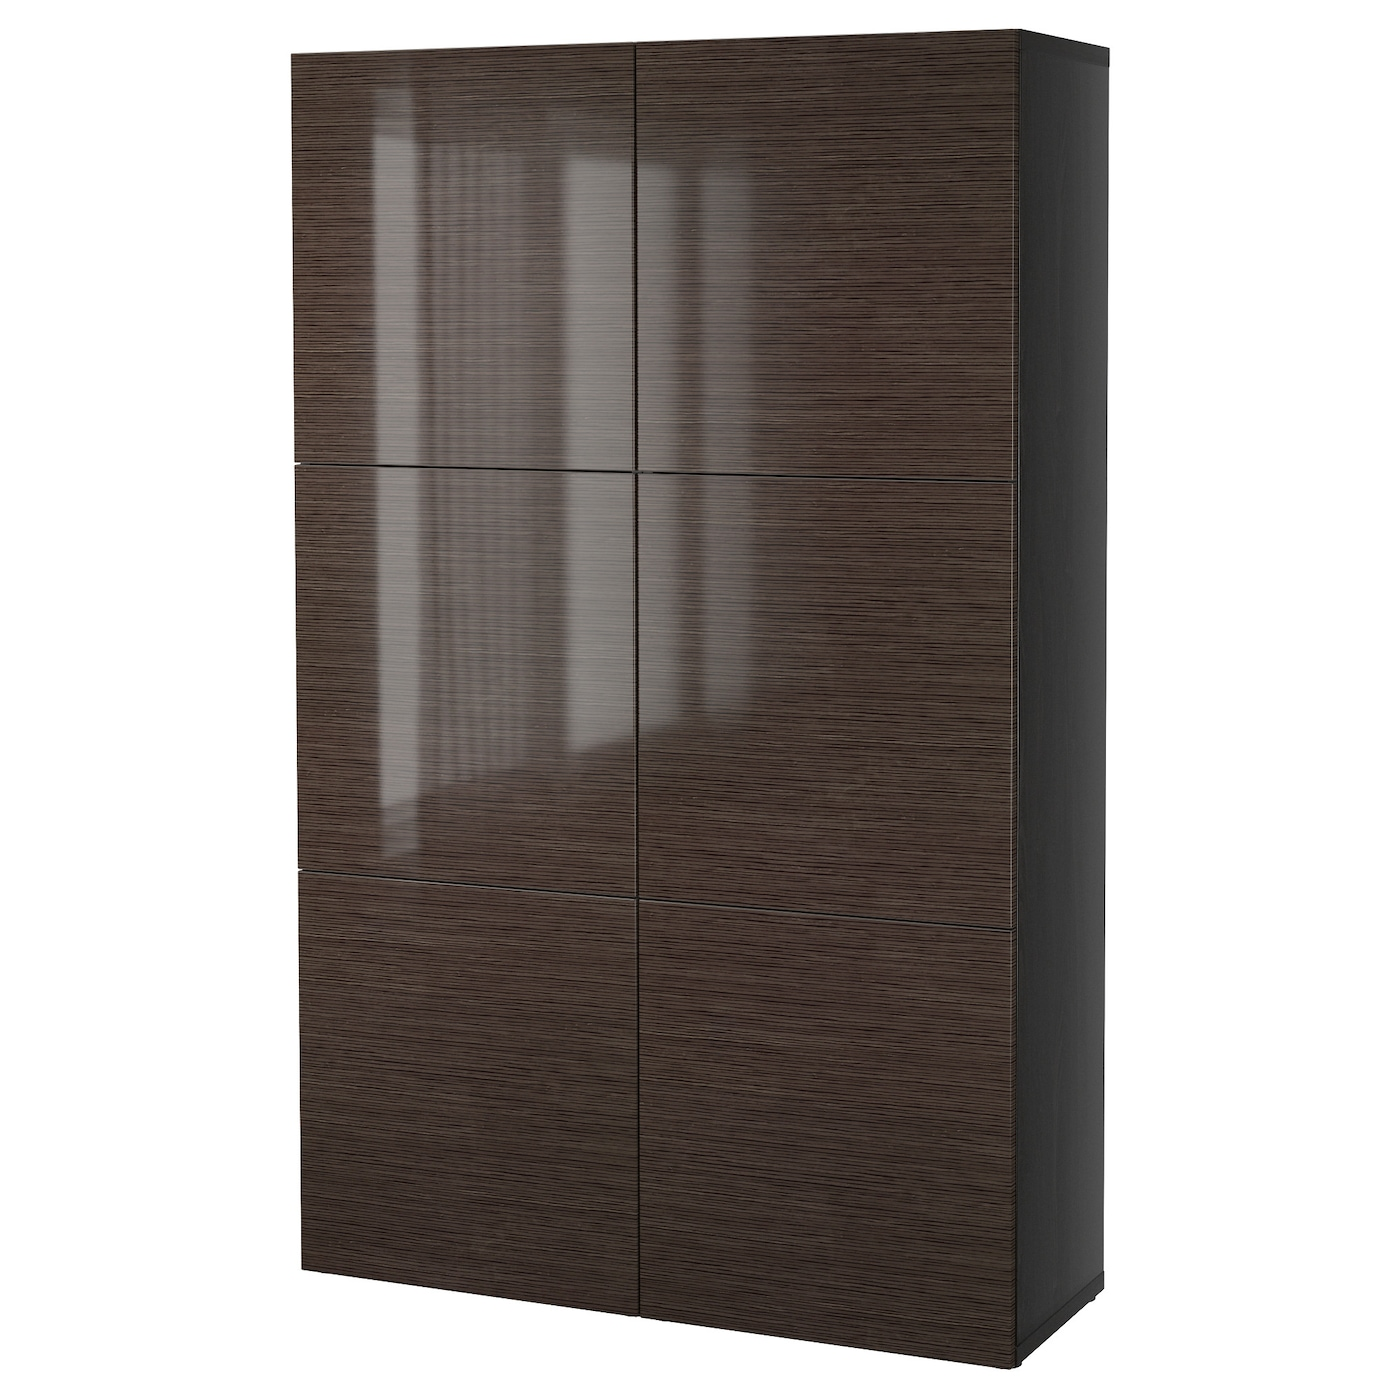 best storage combination with doors black brown selsviken high gloss brown 120x40x192 cm ikea. Black Bedroom Furniture Sets. Home Design Ideas